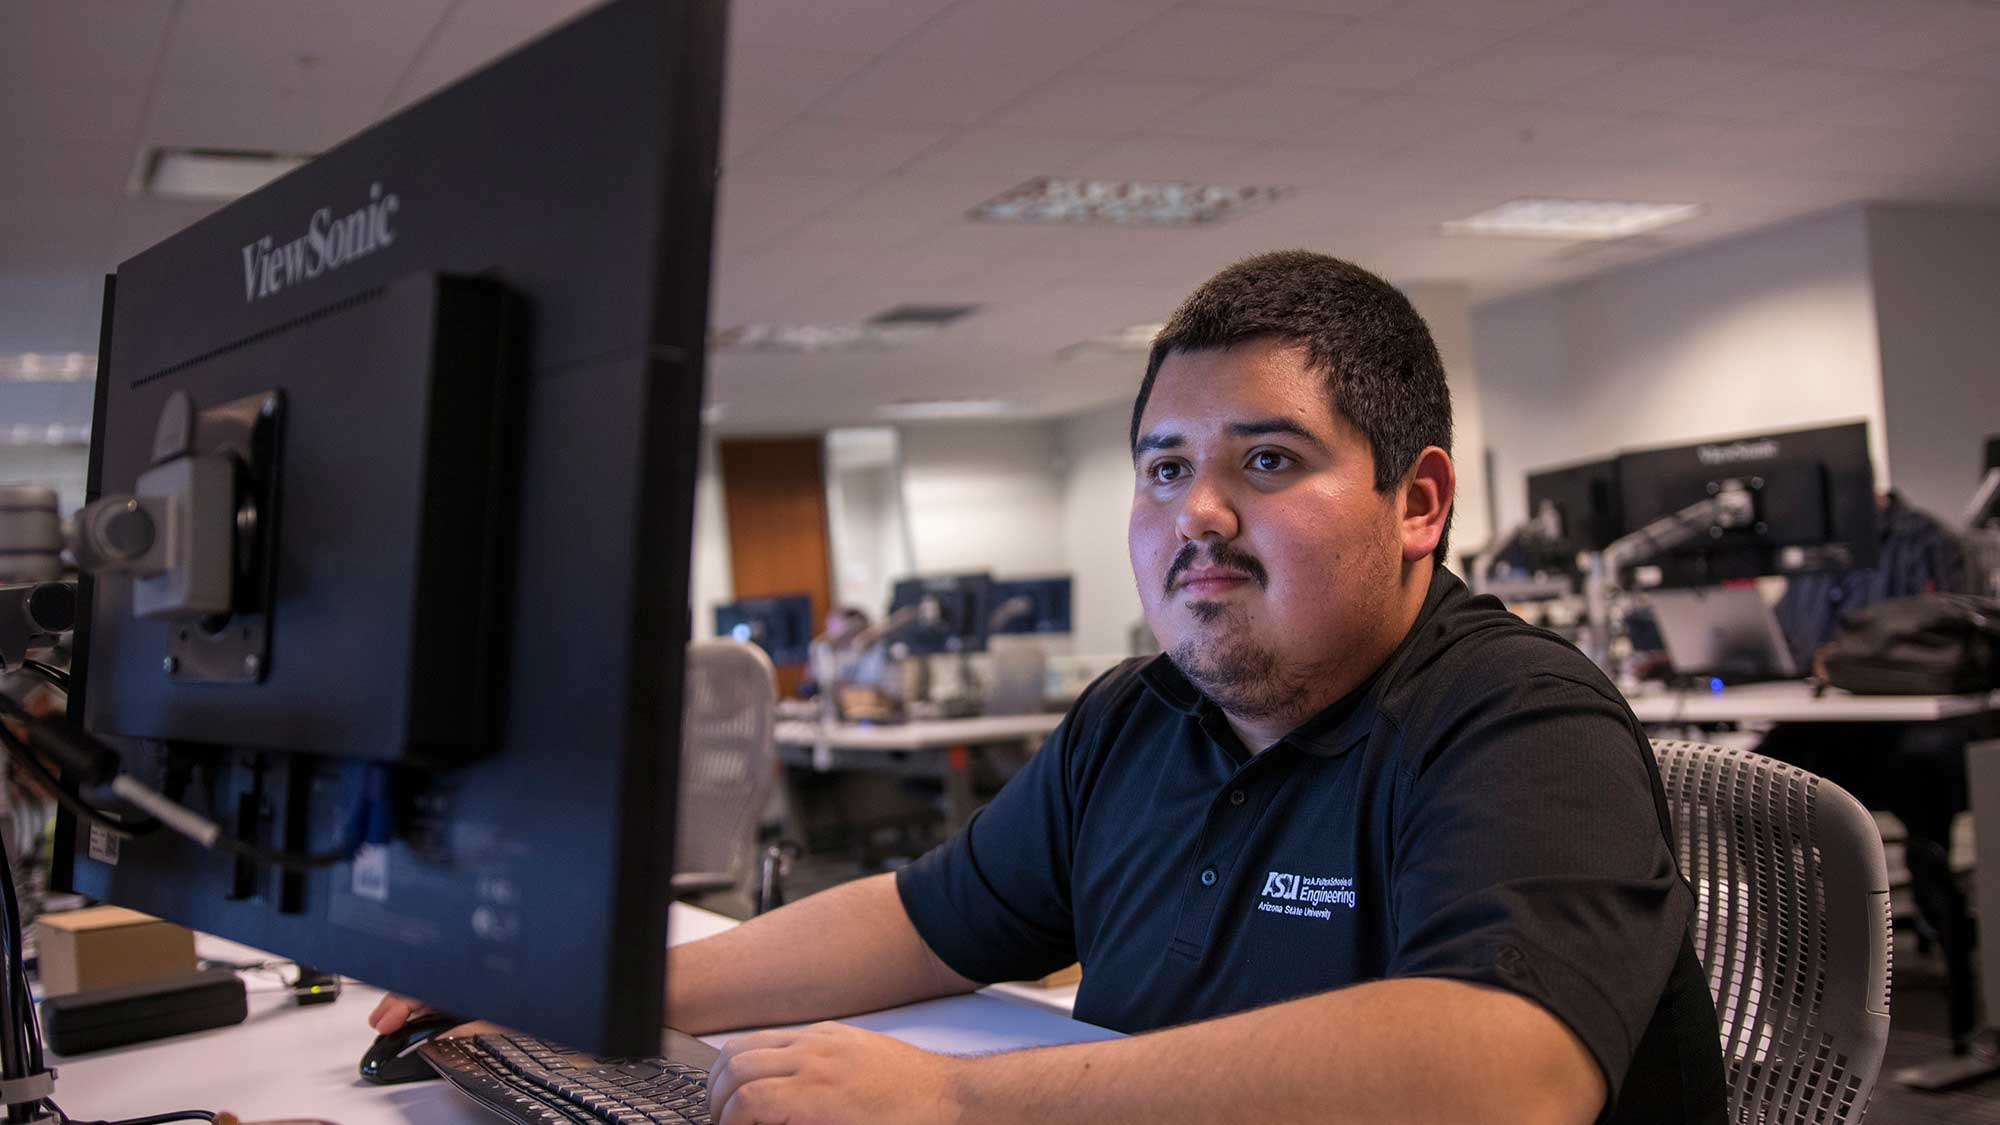 Jonathan Villegas at a computer working in a large room with many other empolyees